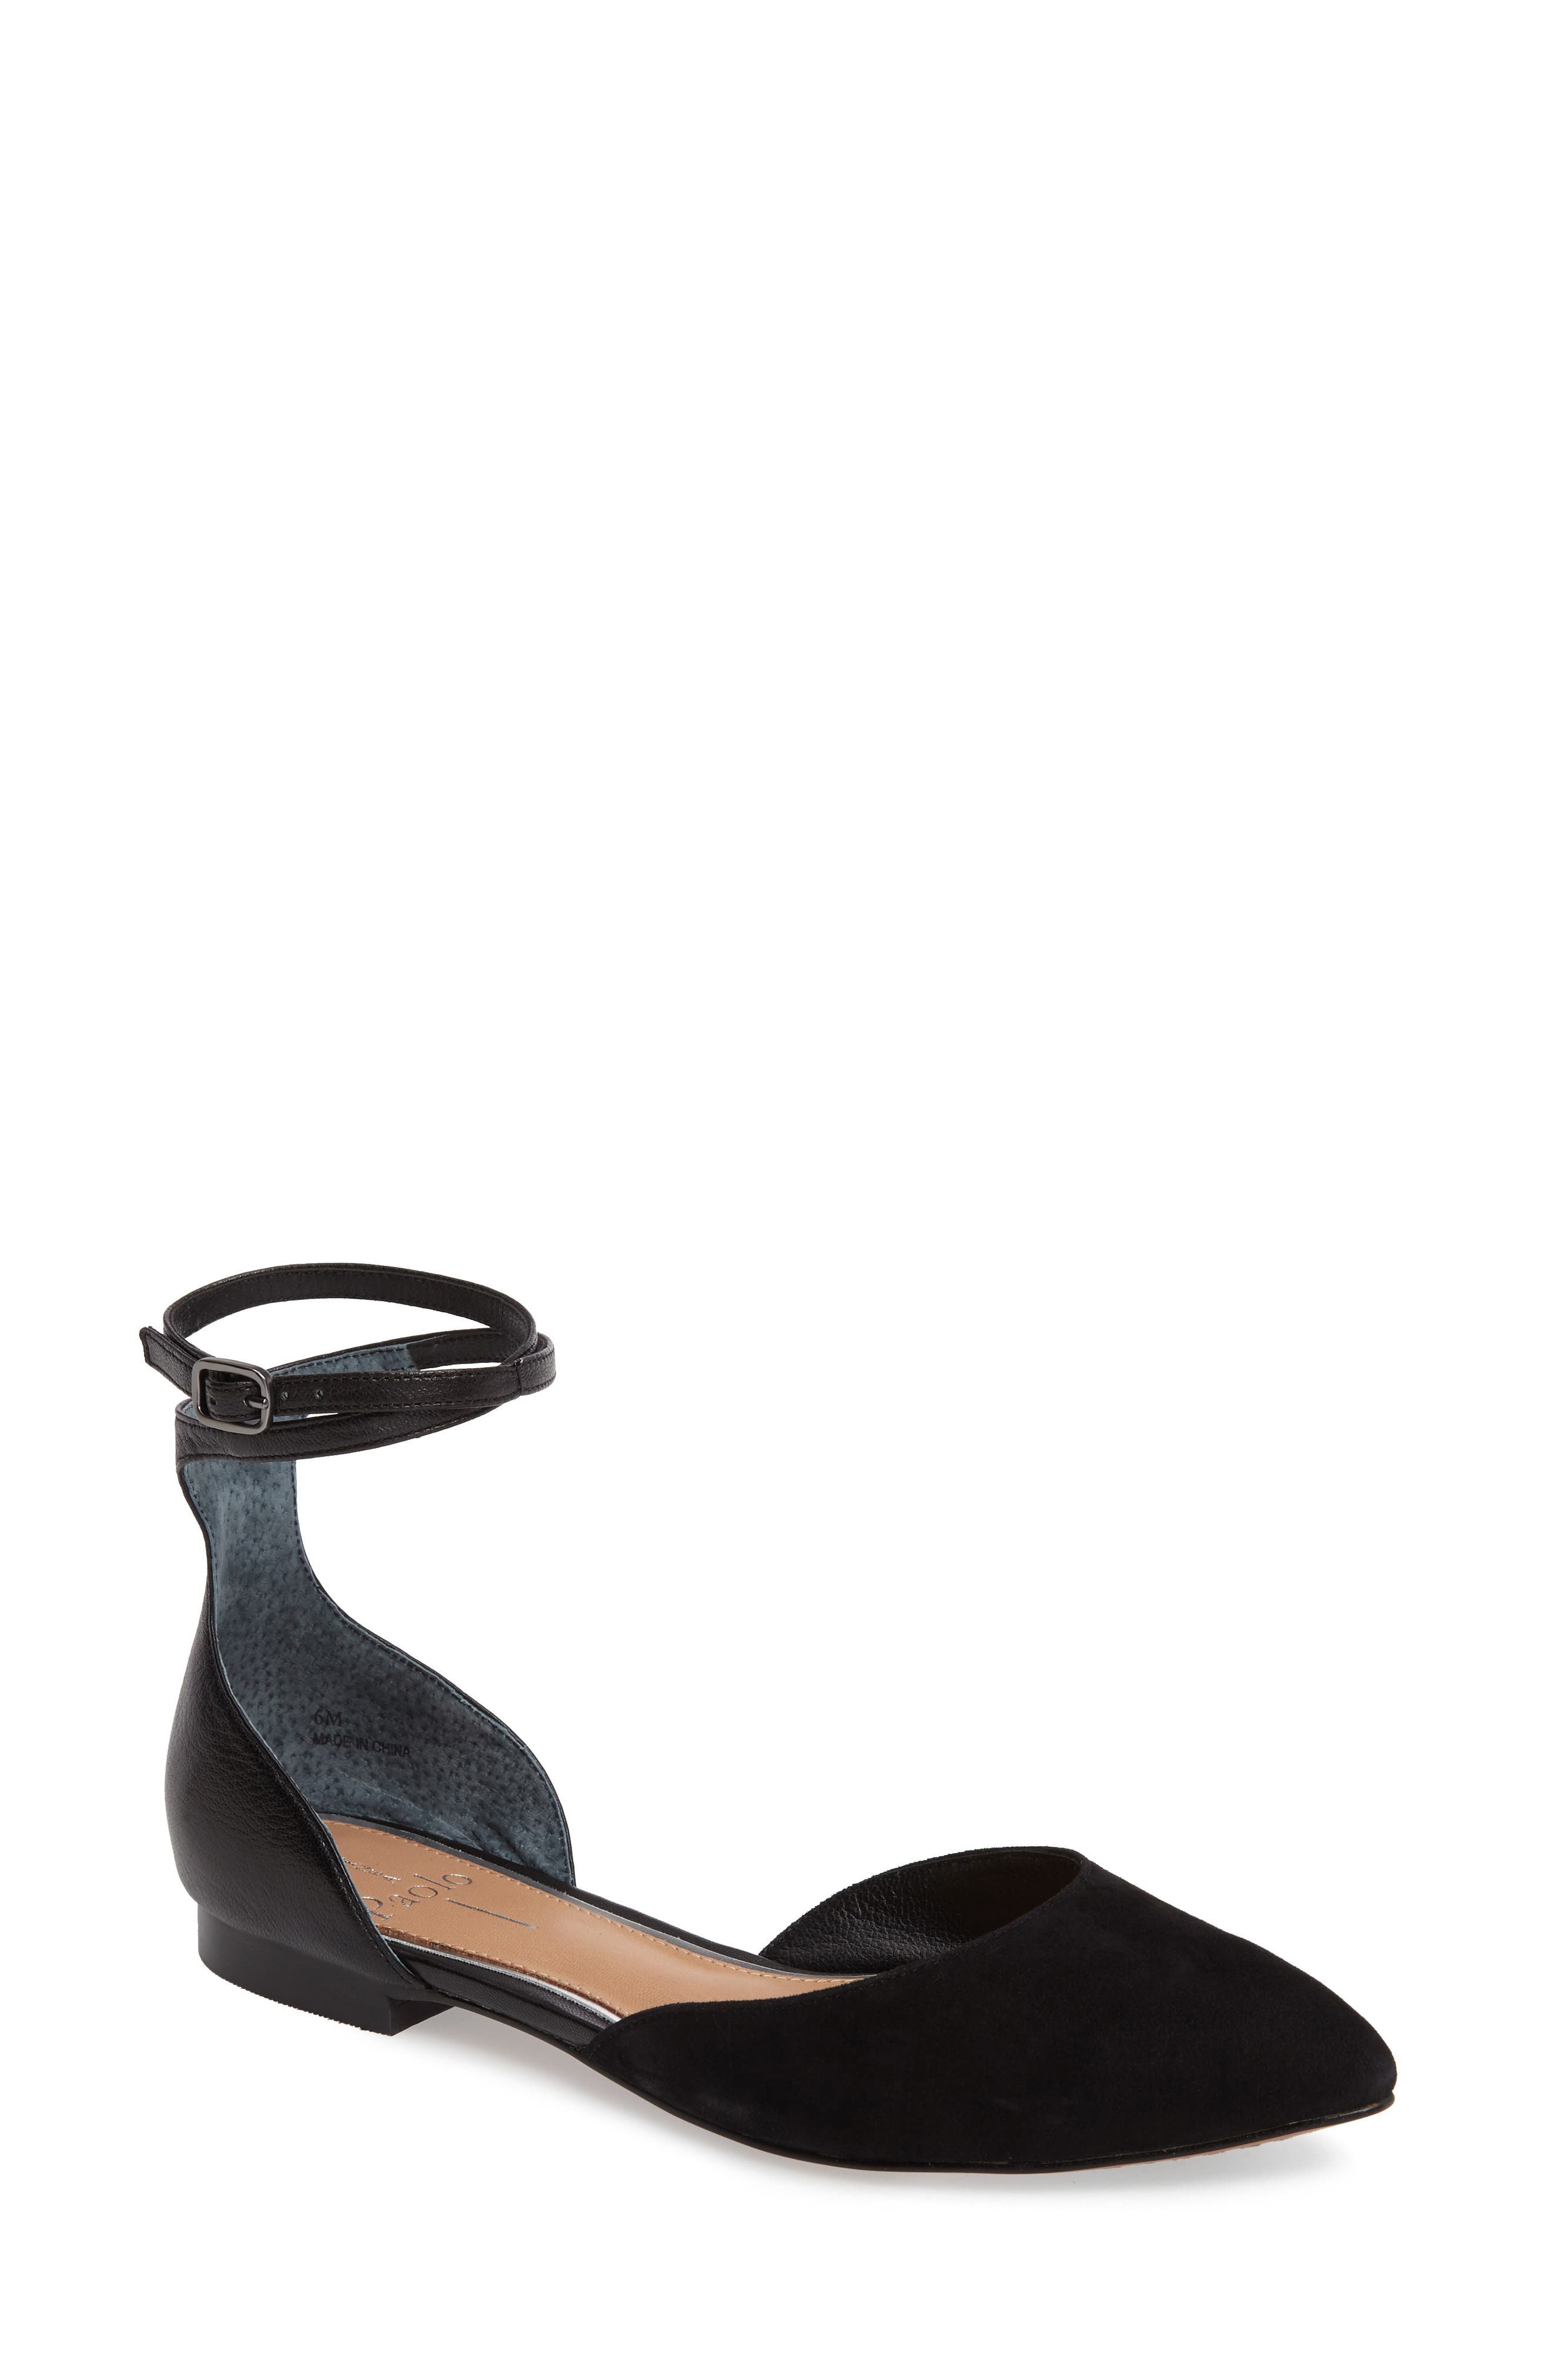 Alternate Image 1 Selected - Linea Paolo Dario Ankle Strap Flat (Women)